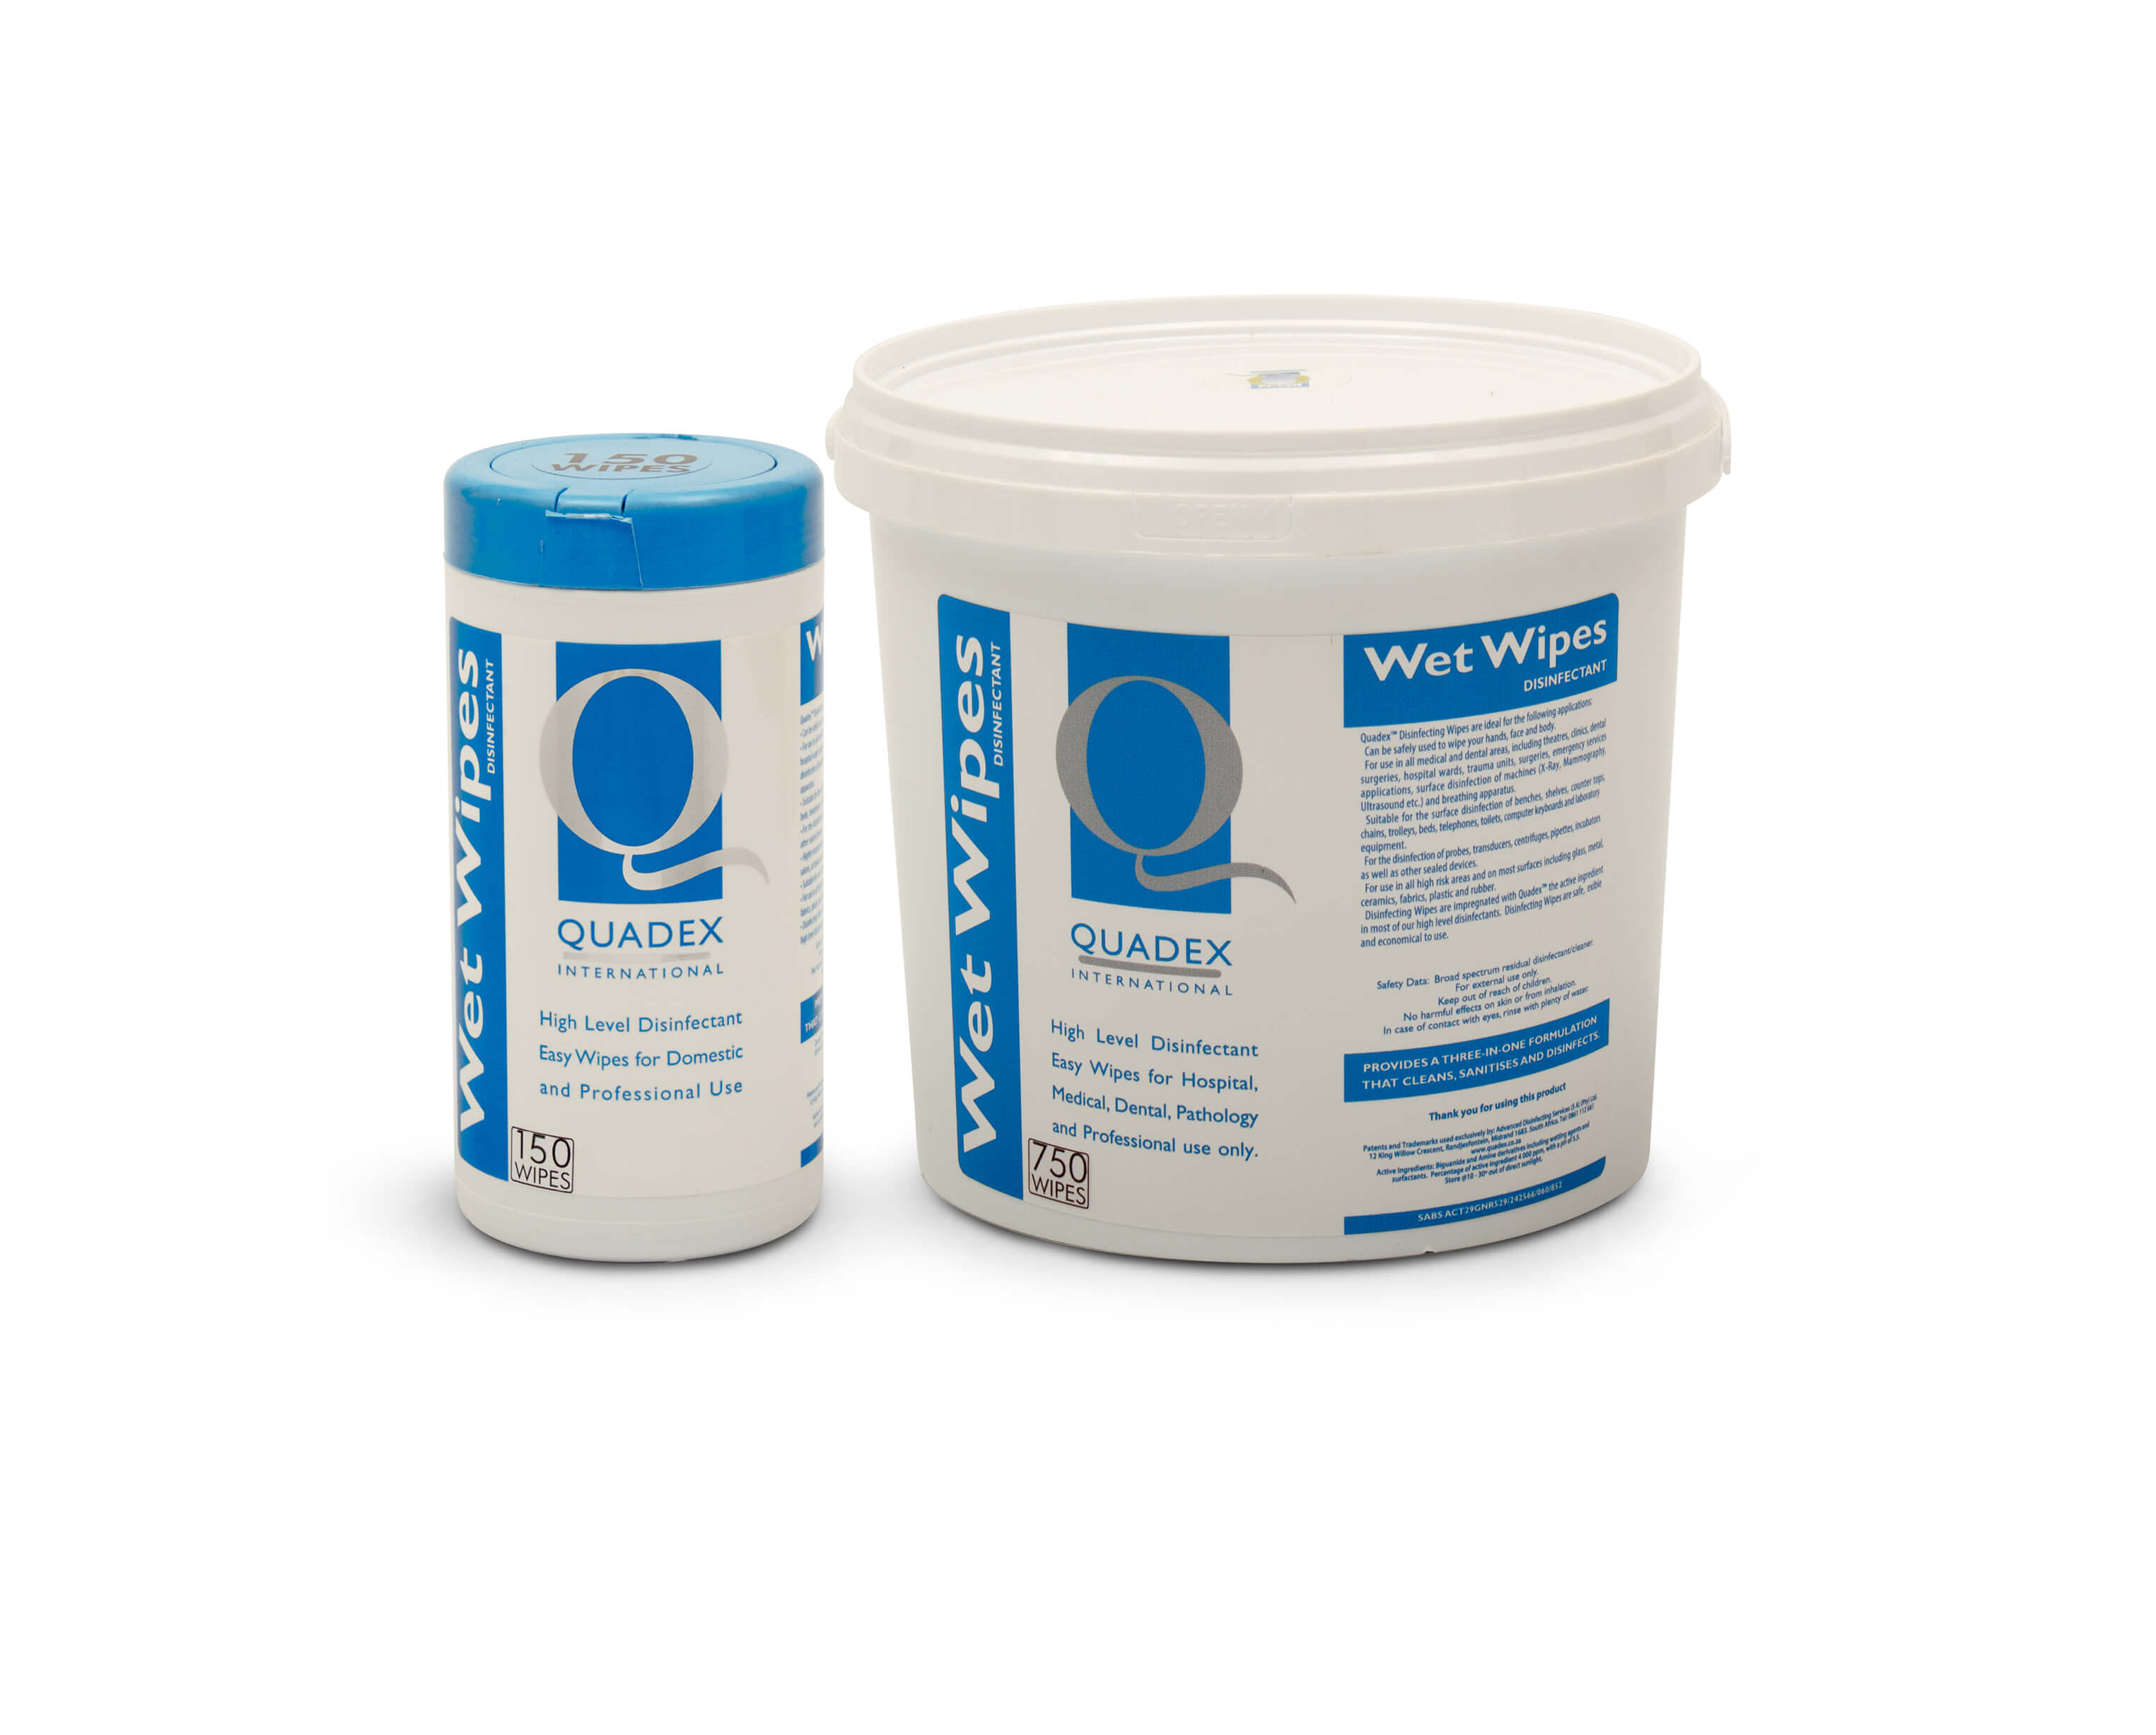 QUADEX® WET WIPES - HIGH LEVEL DISINFECTING WIPES